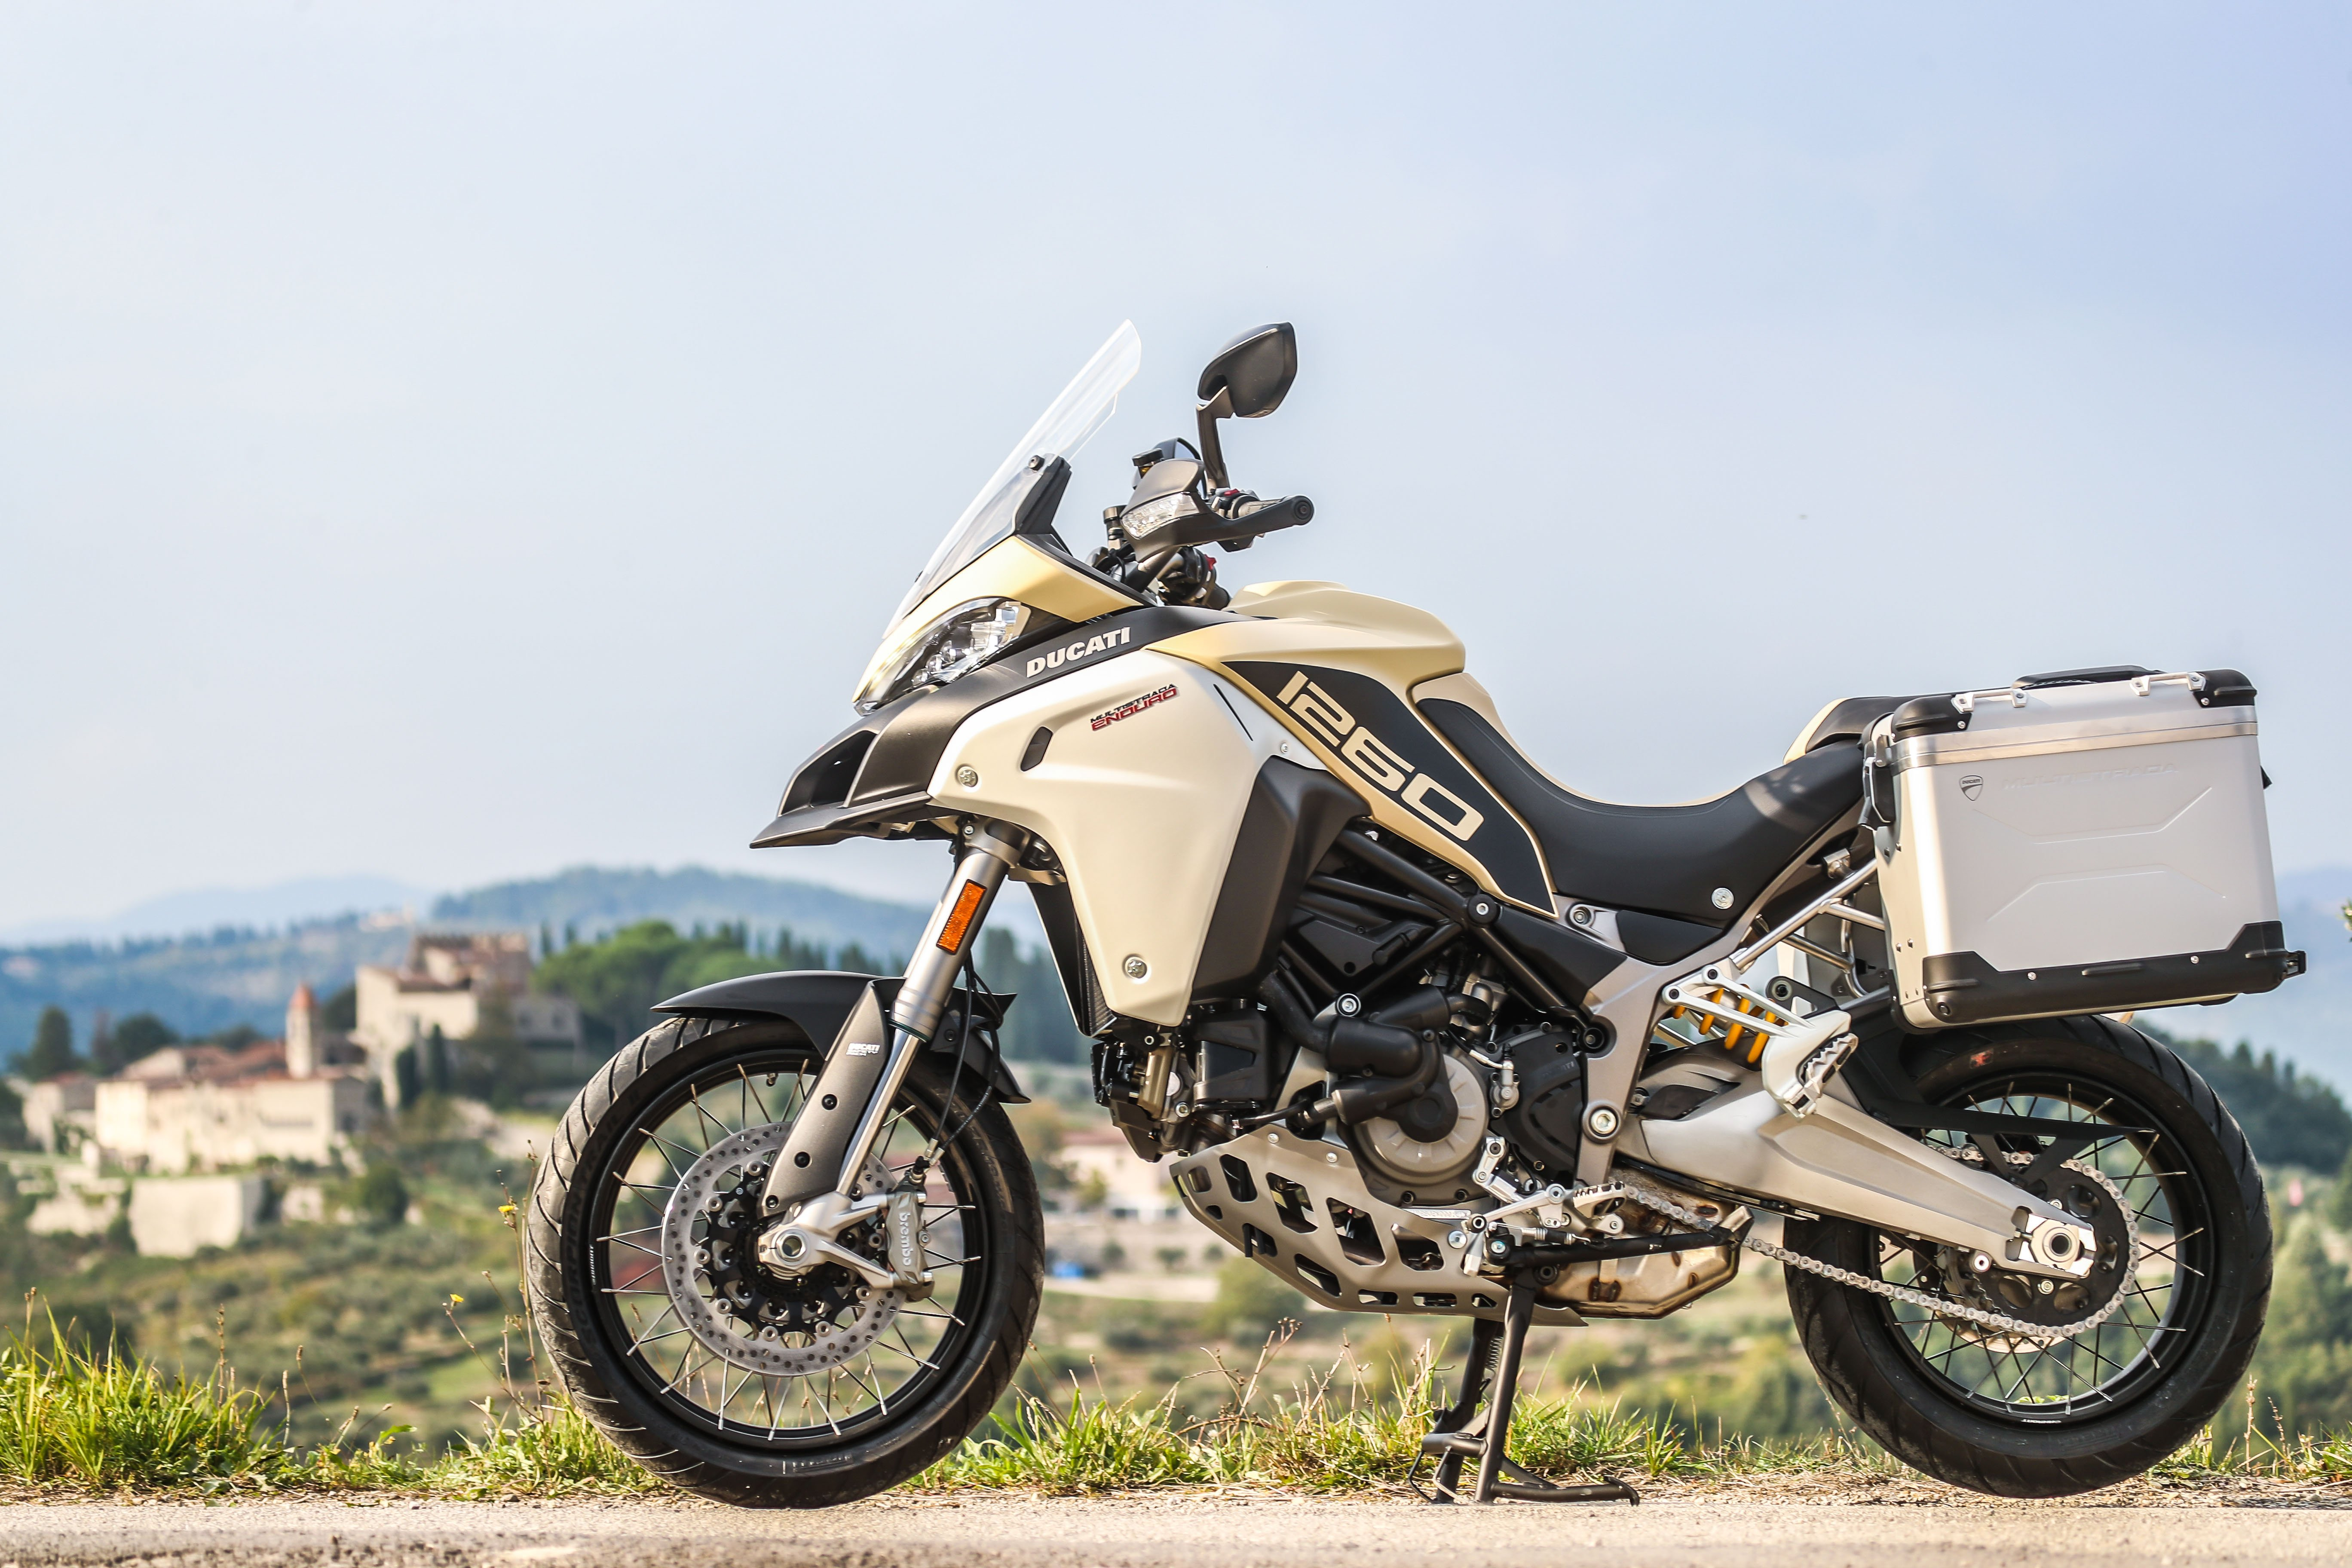 Outstanding 2019 Ducati Multistrada 1260 Enduro Review First Ride Caraccident5 Cool Chair Designs And Ideas Caraccident5Info